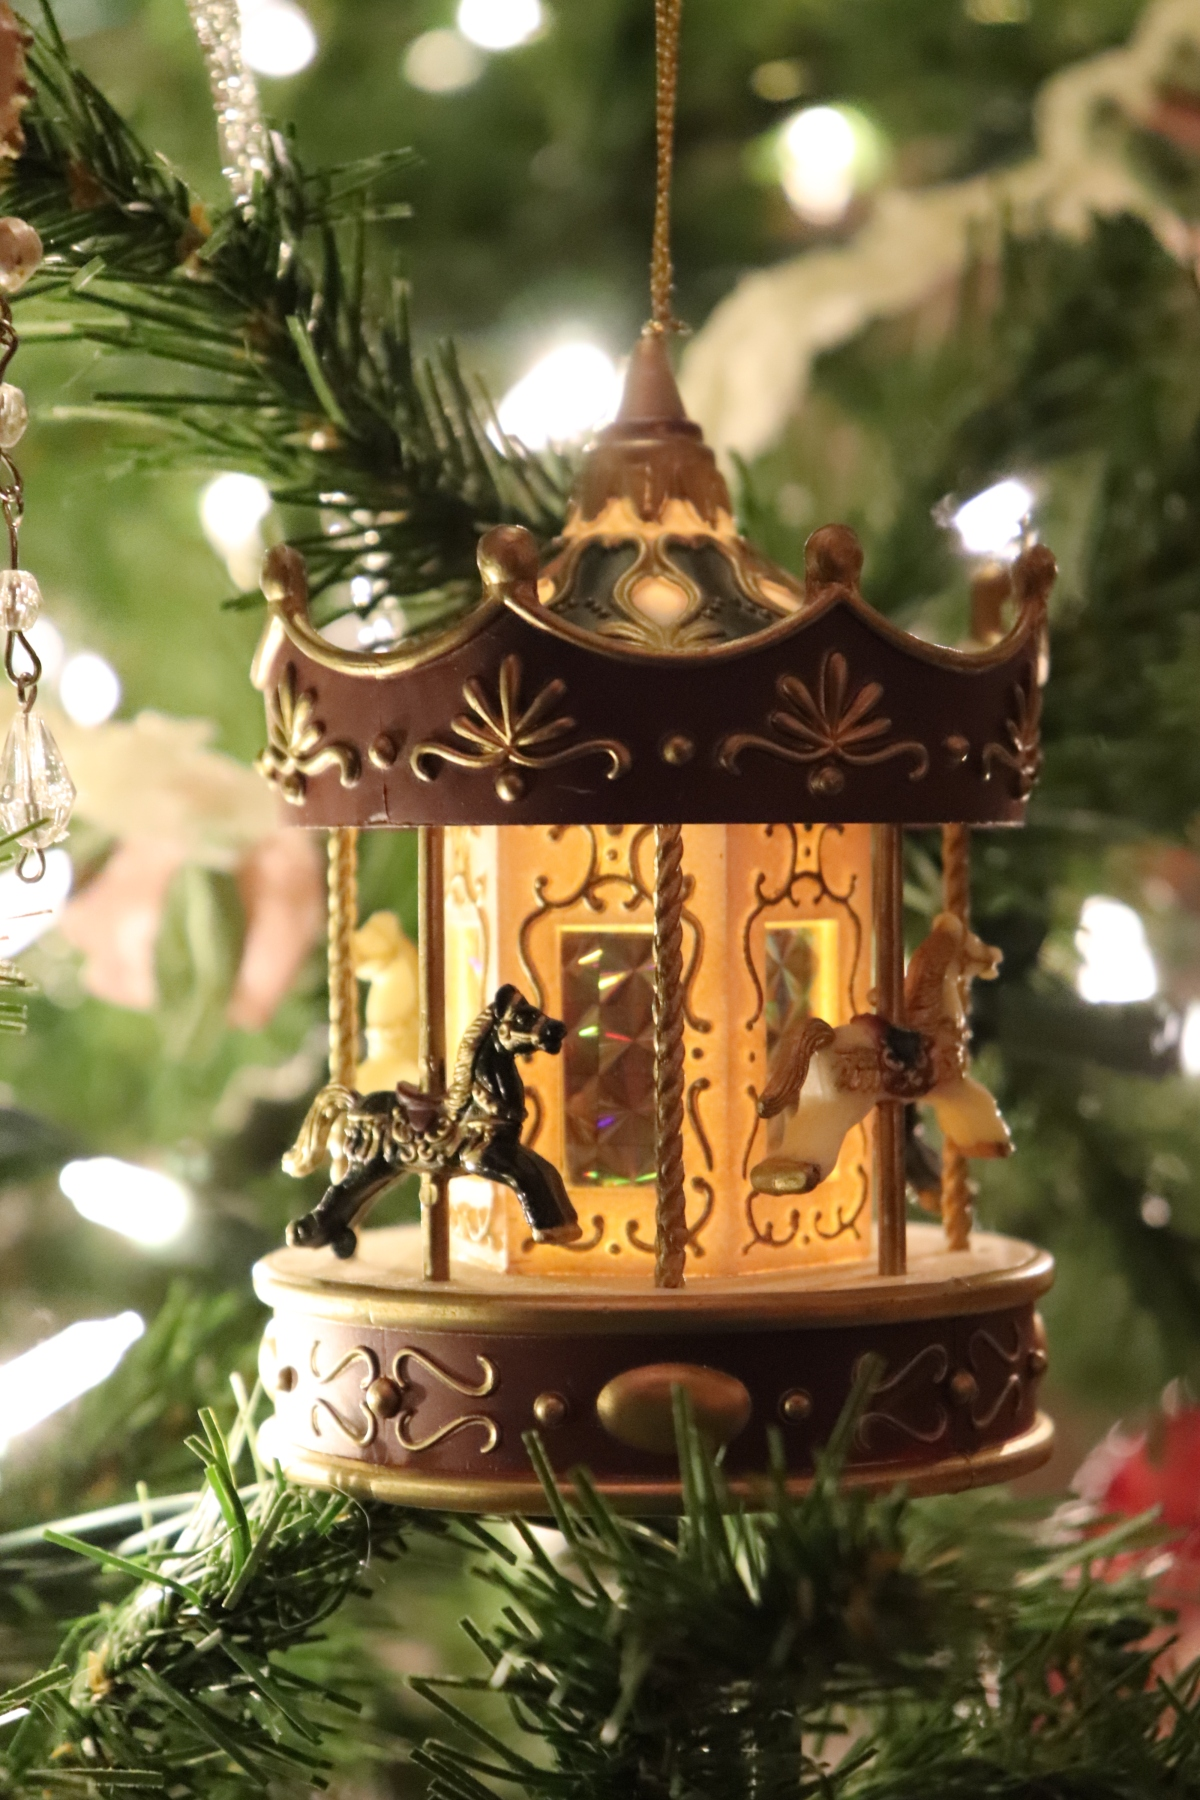 Lit Carousel Ornament